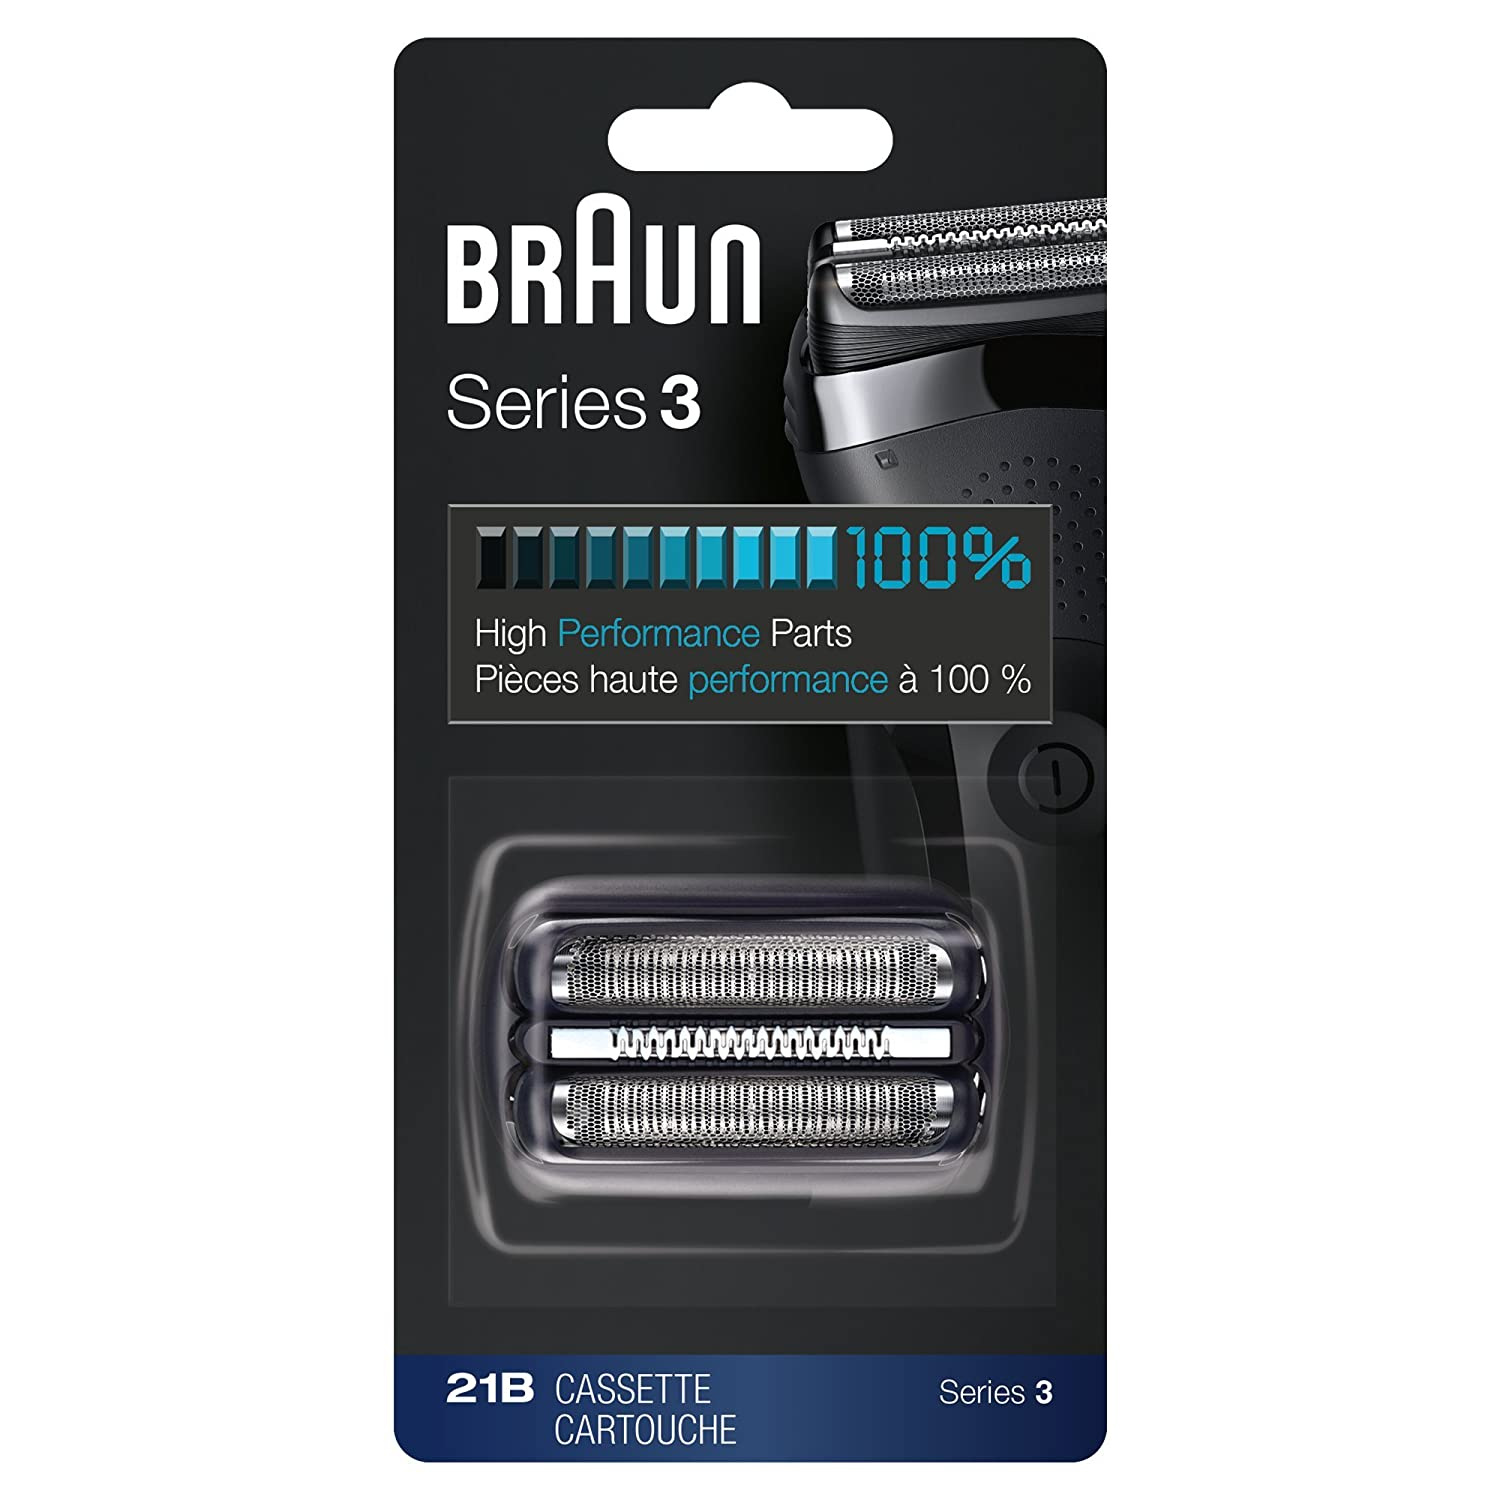 Braun 21B Series 2 Electric Shaver Replacement Foil and Cassette Cartridge - Black 81570020